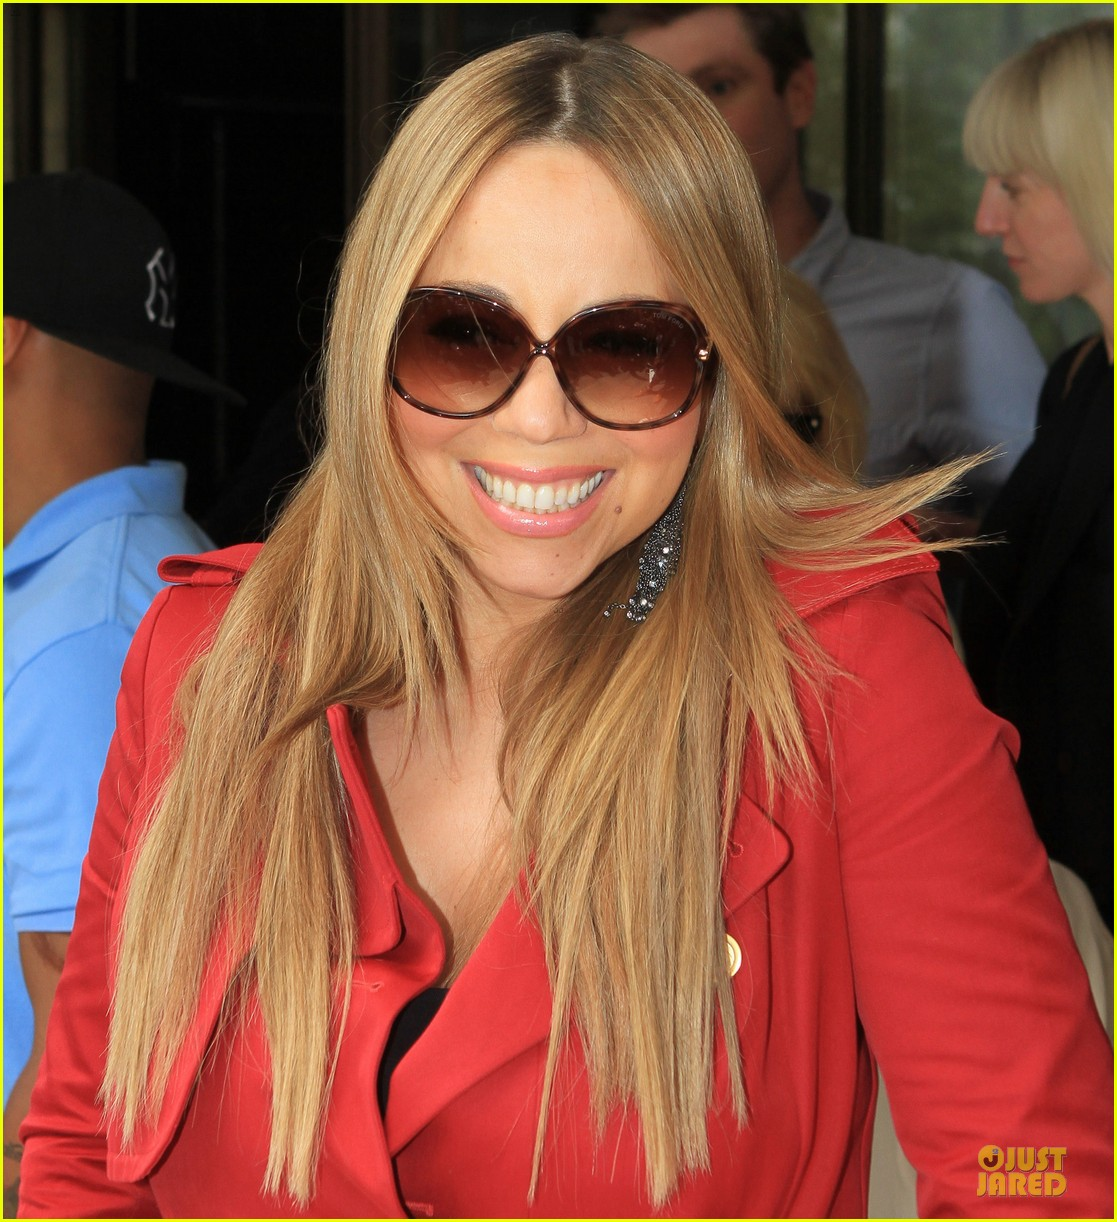 - mariah-carey-red-trench-coat-london-04